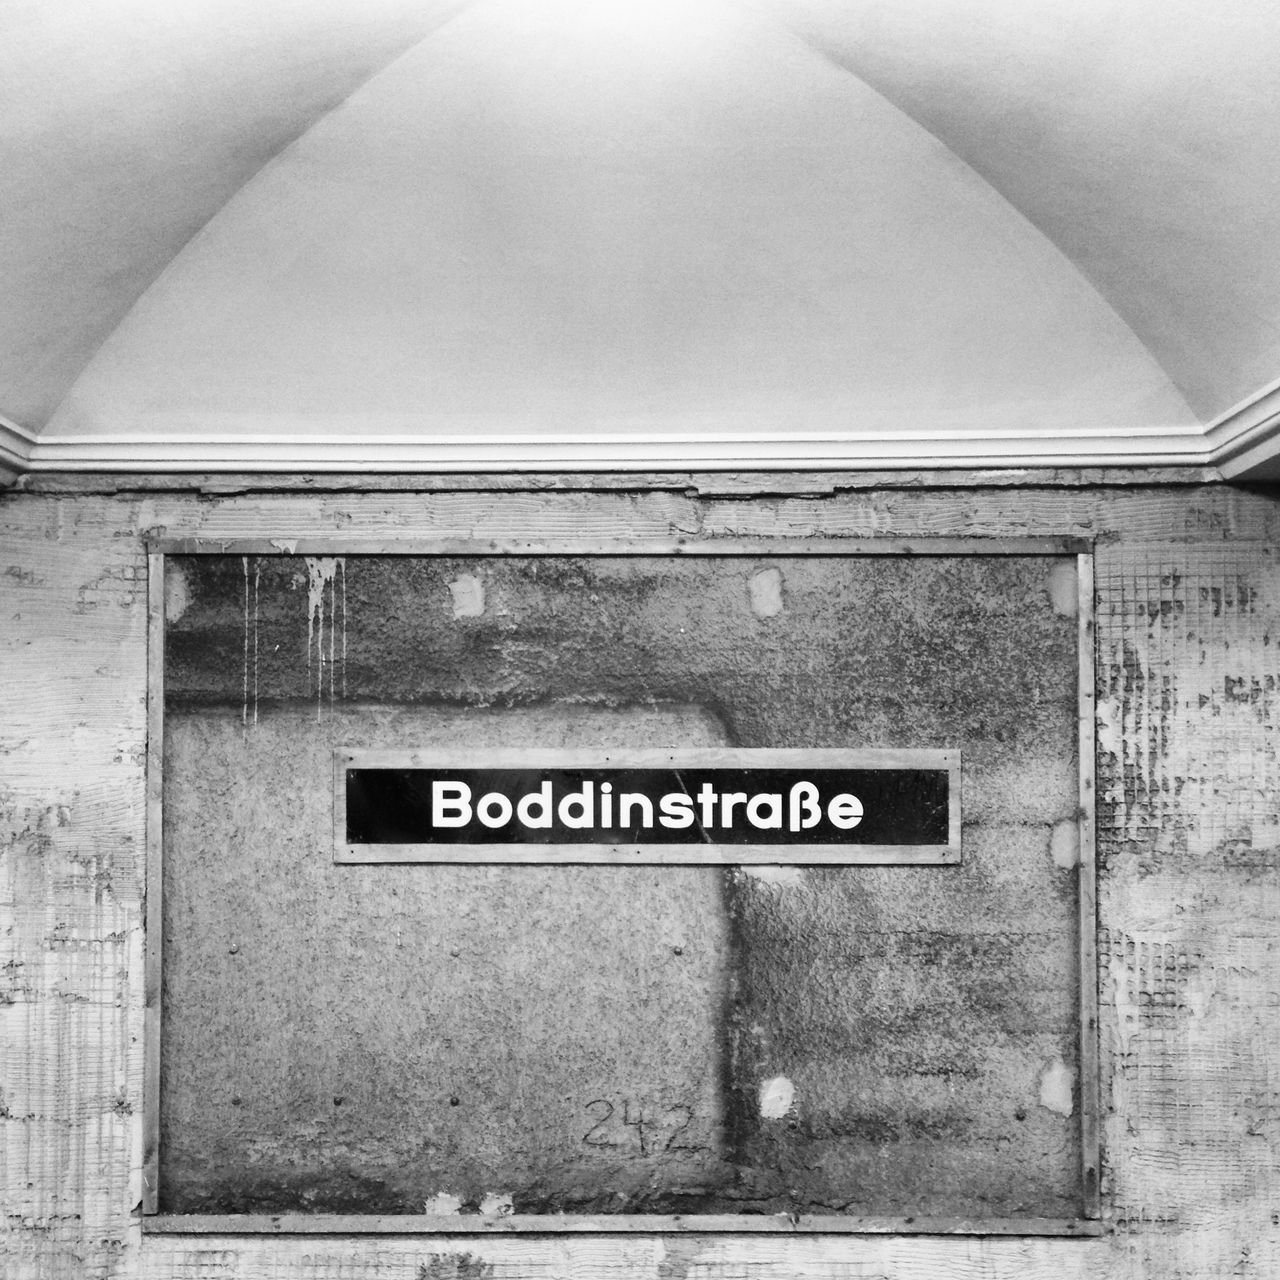 Architecture Black & White Black And White Blackandwhite Boddinstraße Building Exterior Built Structure Close-up Communication Day No People Outdoors Station Subway Station Text